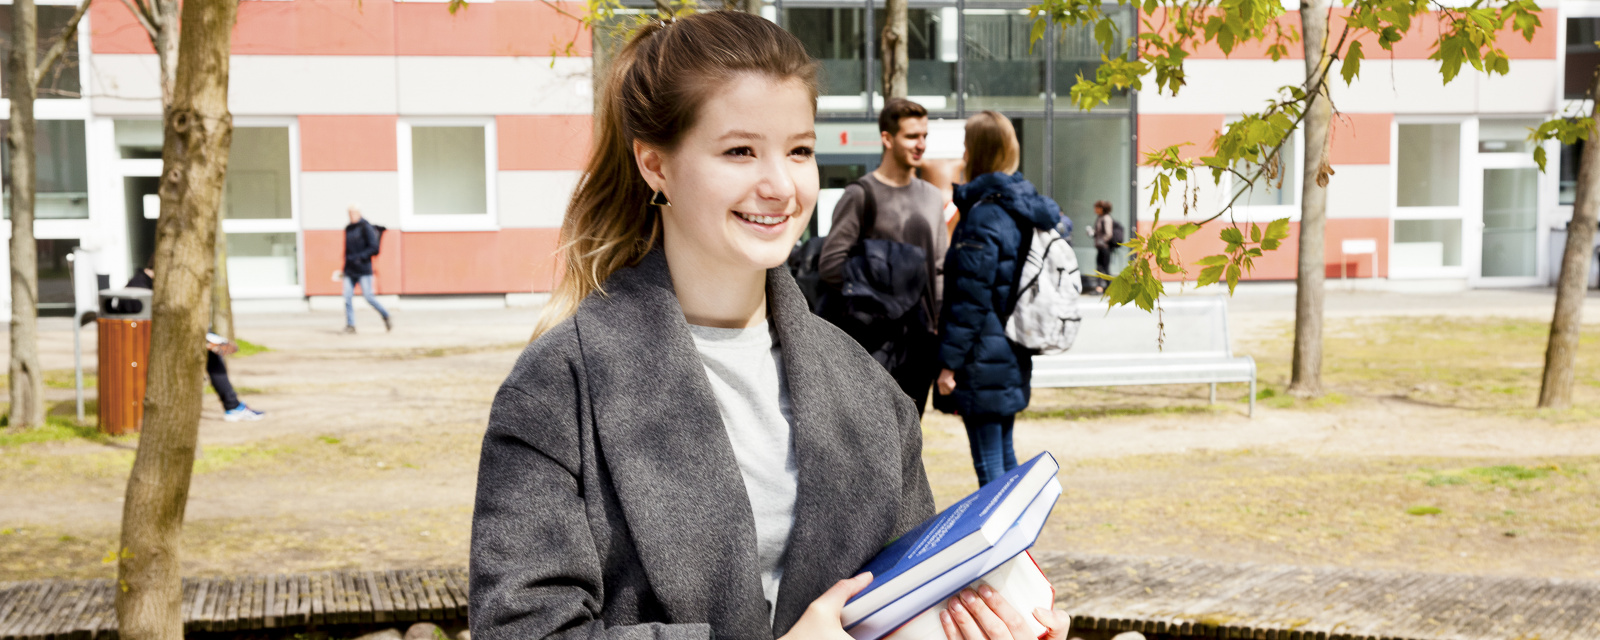 Female student carrying a book on campus